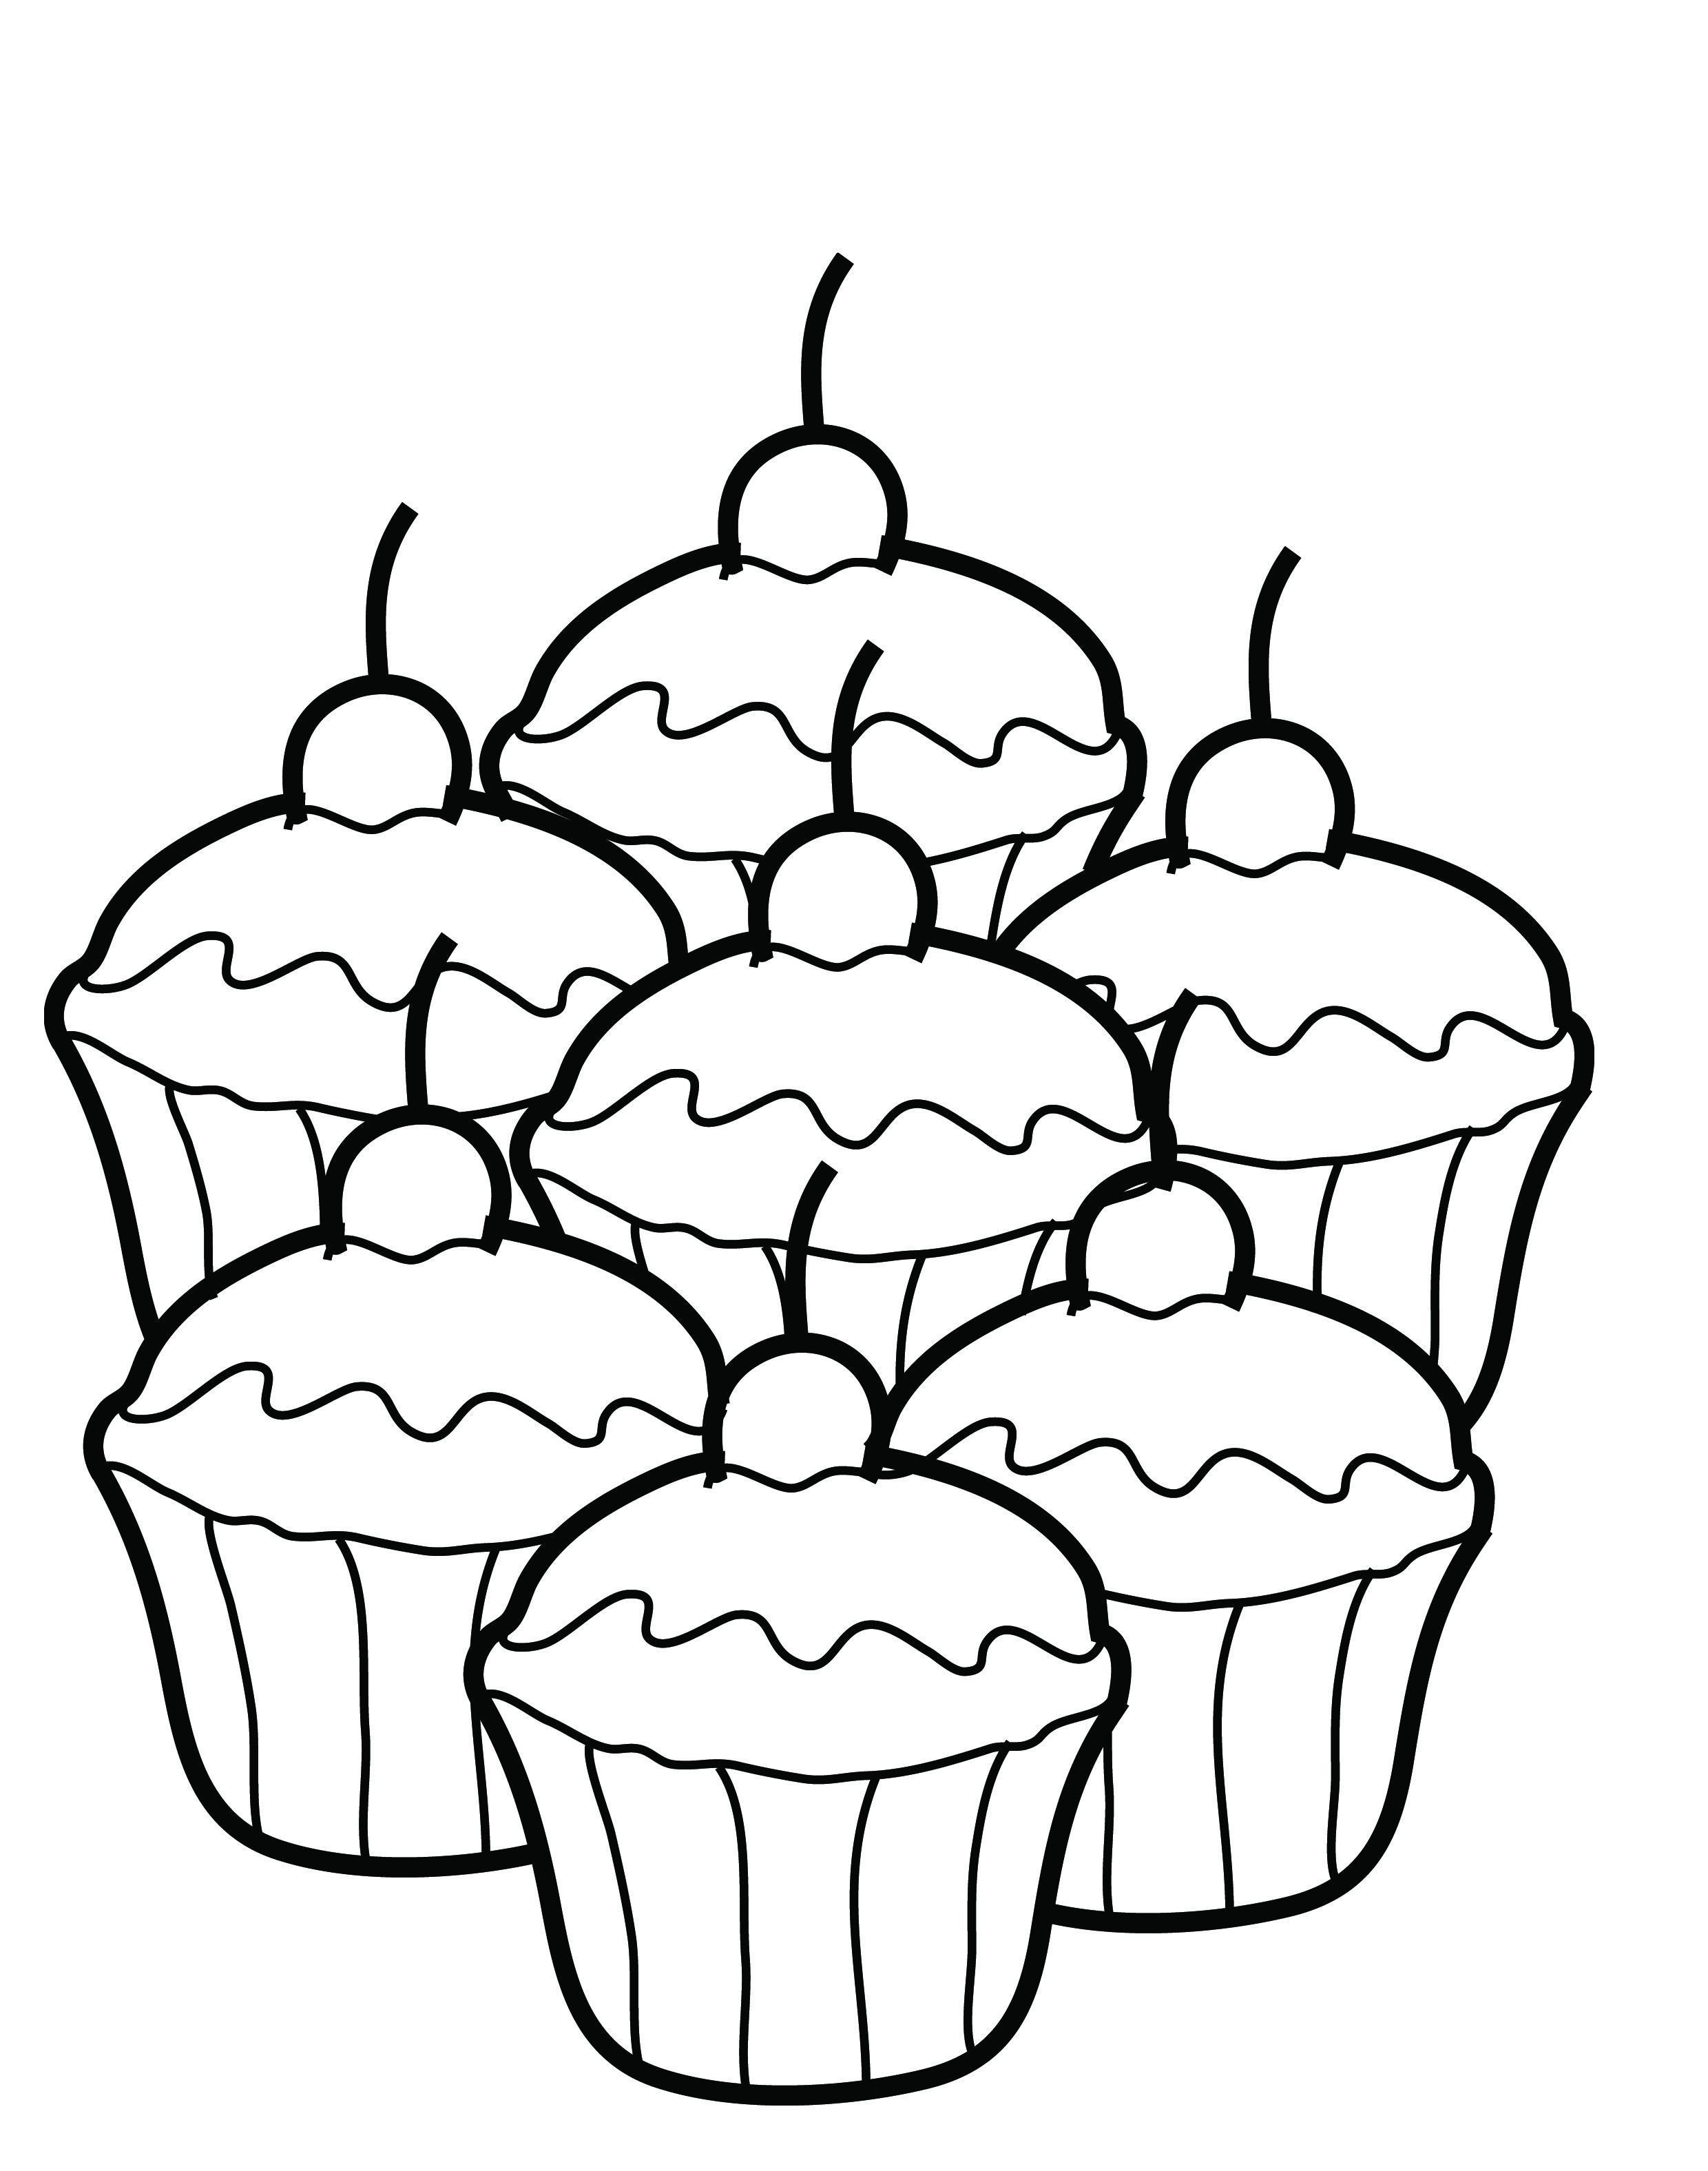 cupcake coloring pages for kids - Coliring Pages